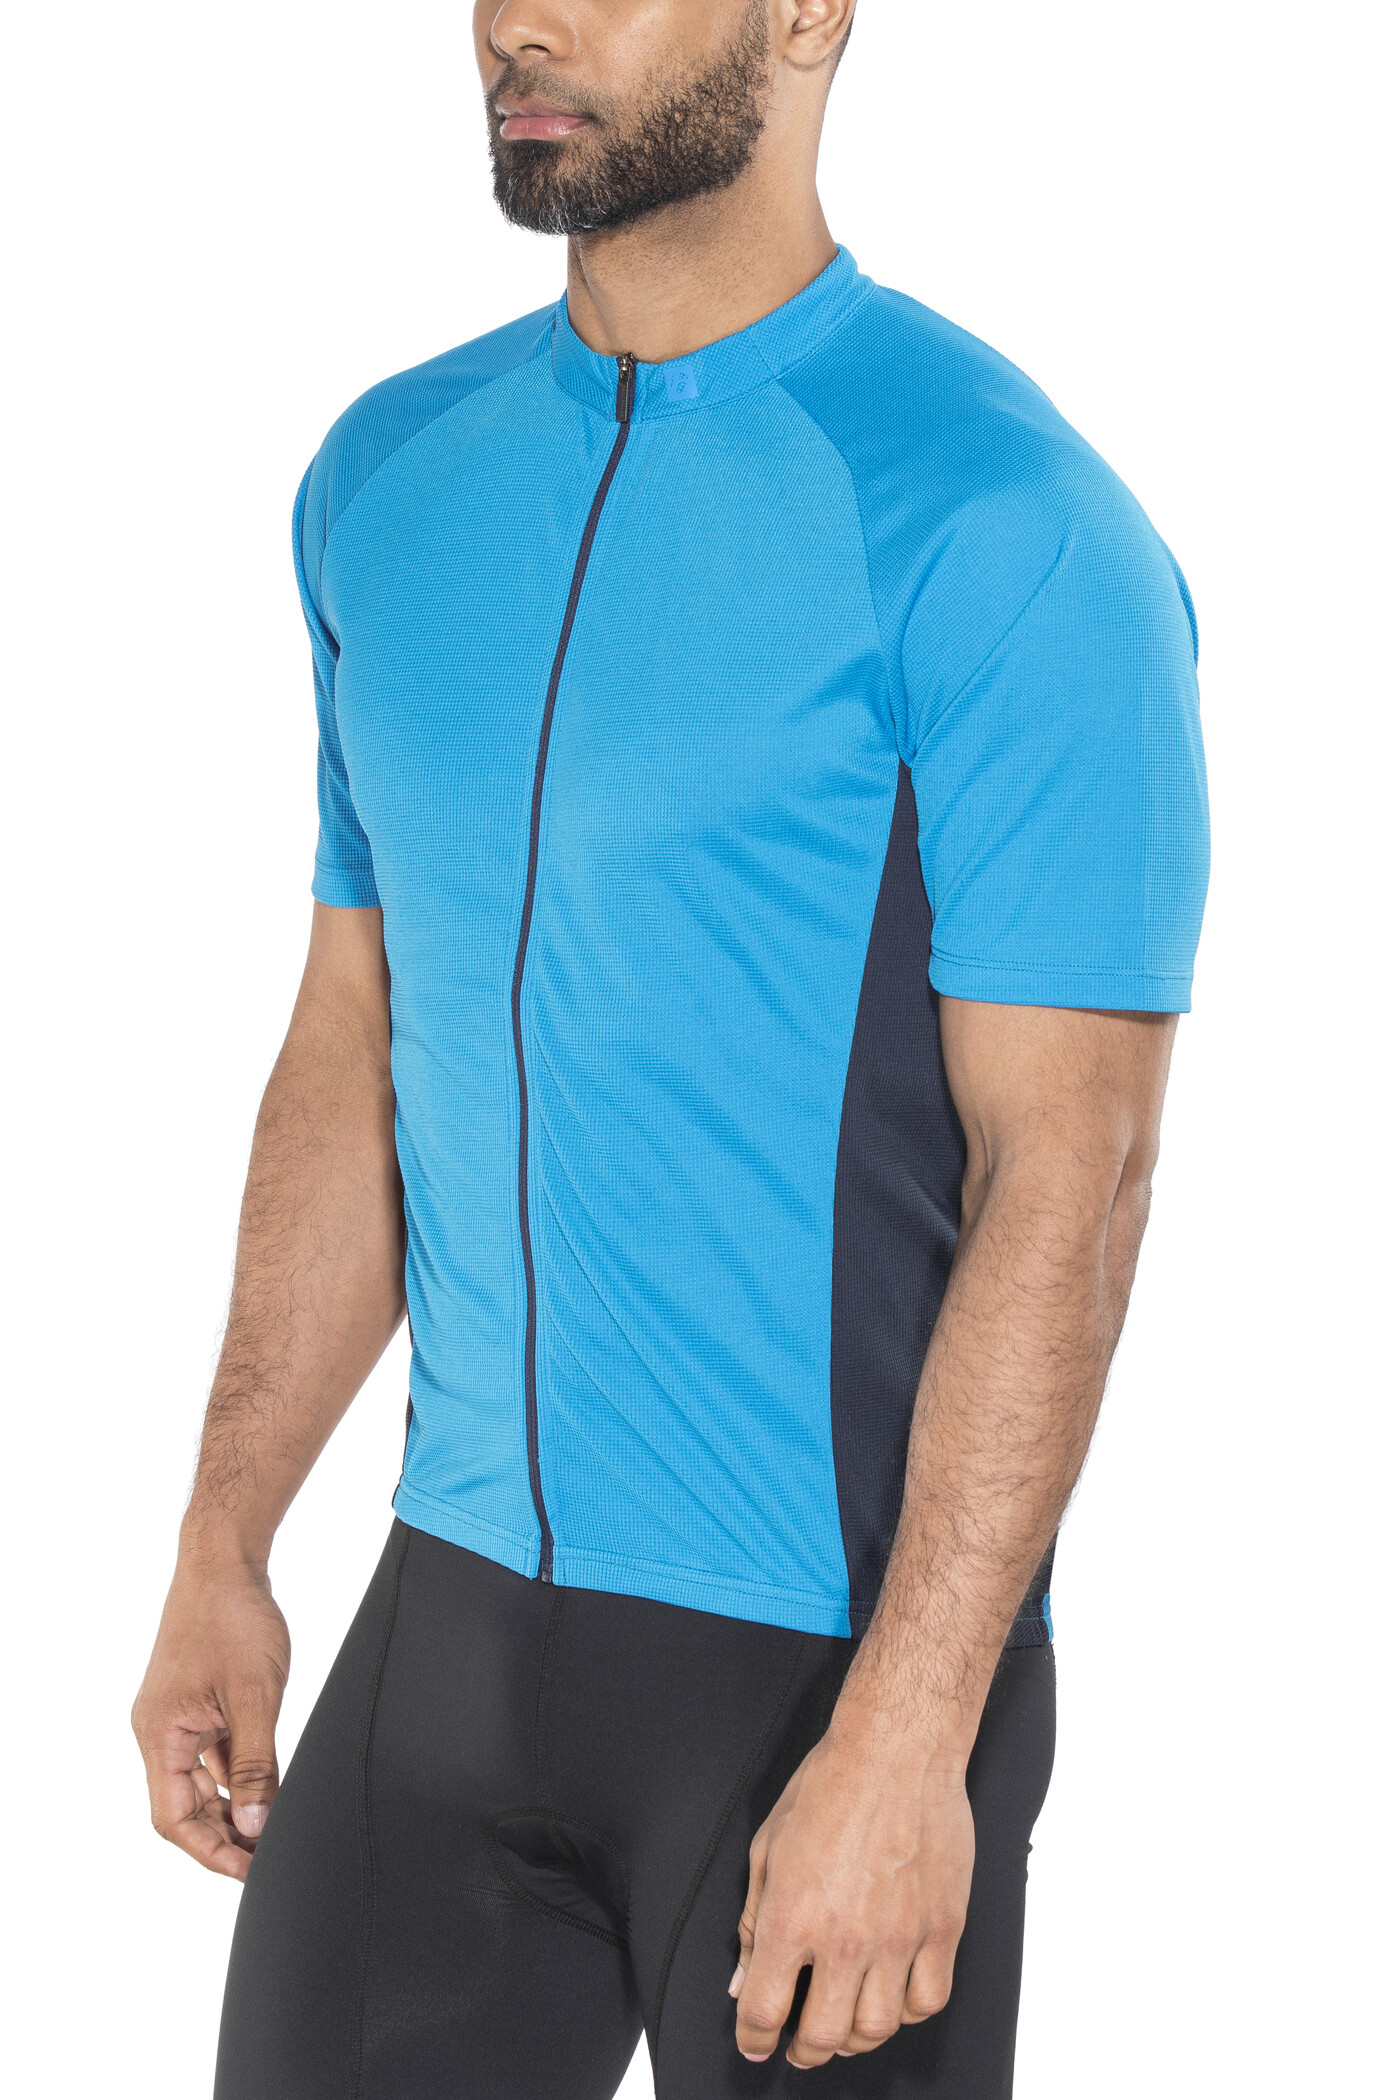 Bontrager Solstice Cycling Jersey - Viper Red | Jerseys